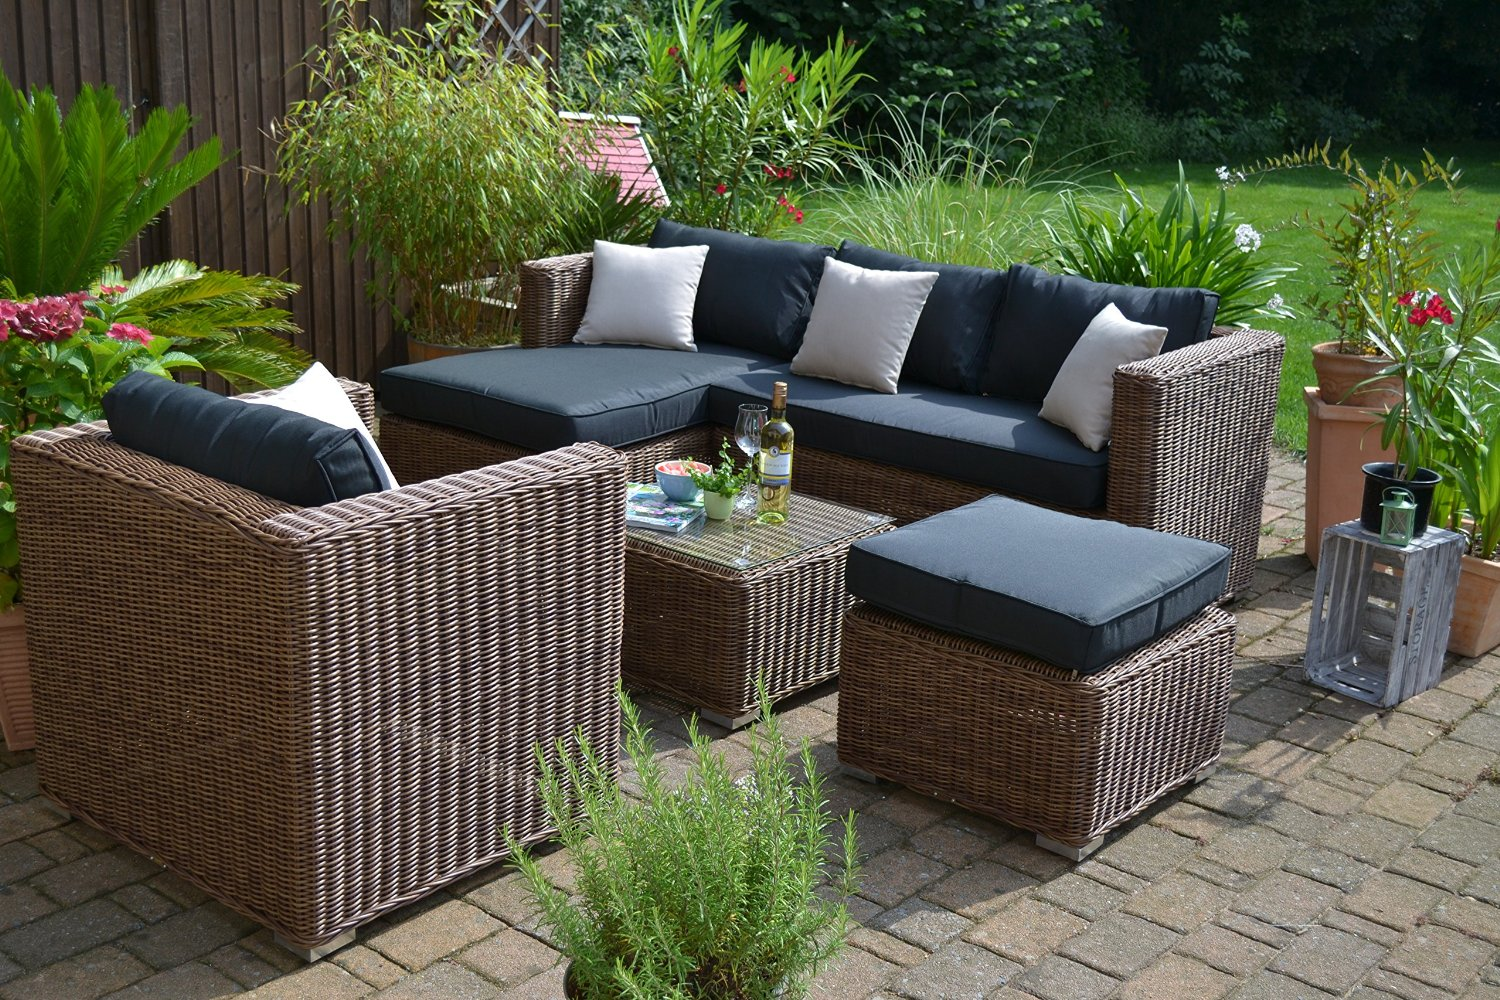 gartenm bel aus polyrattan outdoor m bel polyrattan. Black Bedroom Furniture Sets. Home Design Ideas